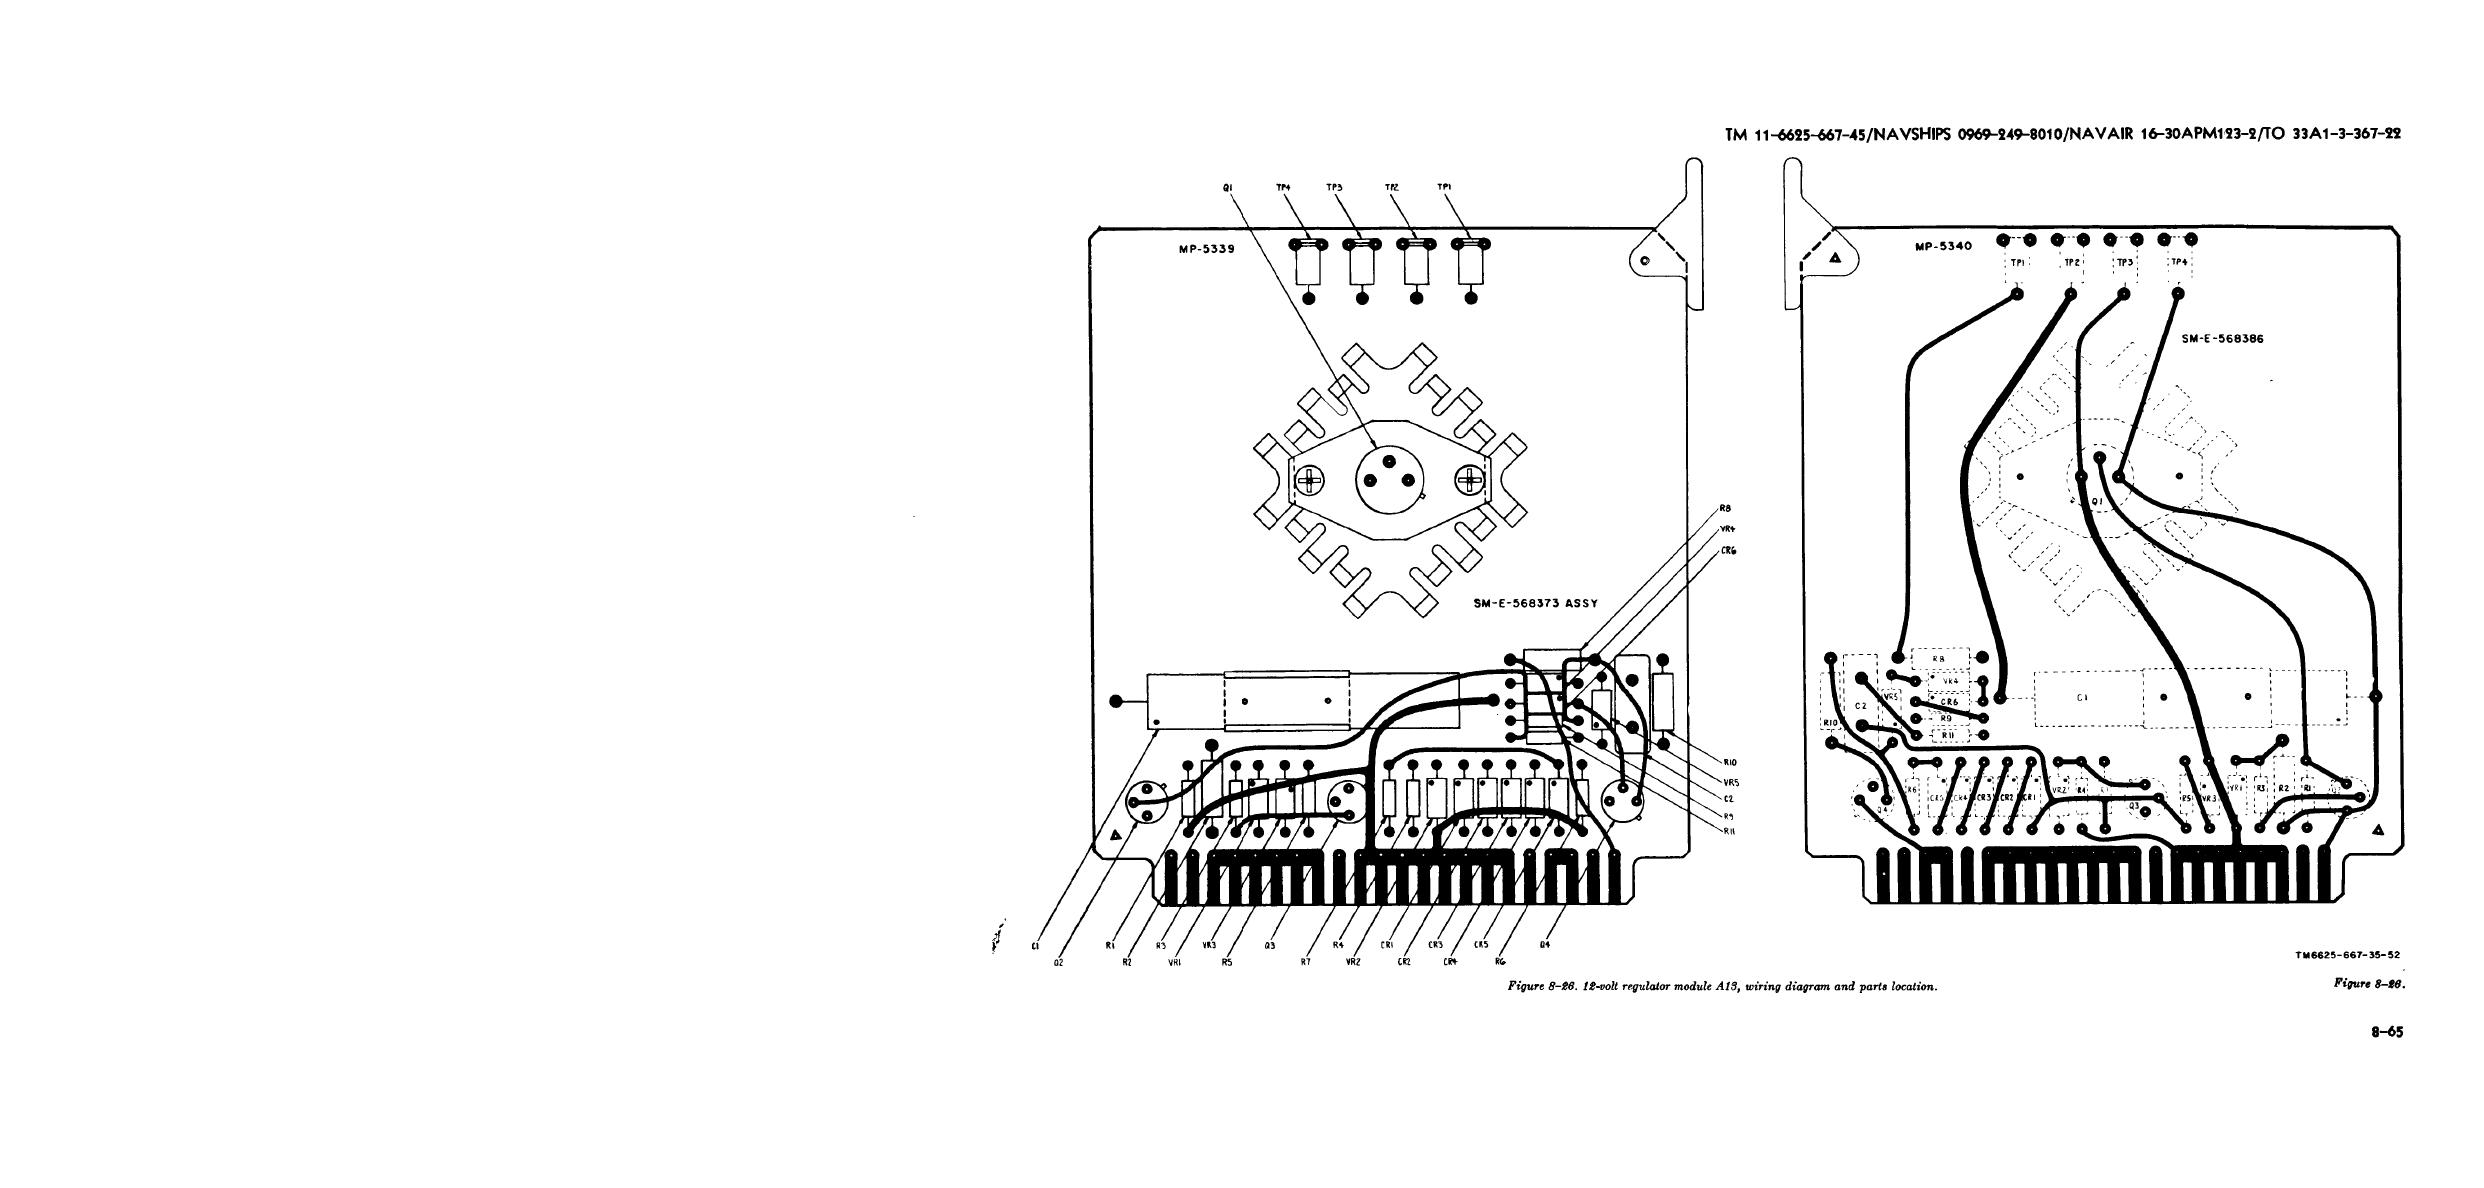 Figure 8 26 12 Volt Regulator Module A13 Wiring Diagram And Parts Location